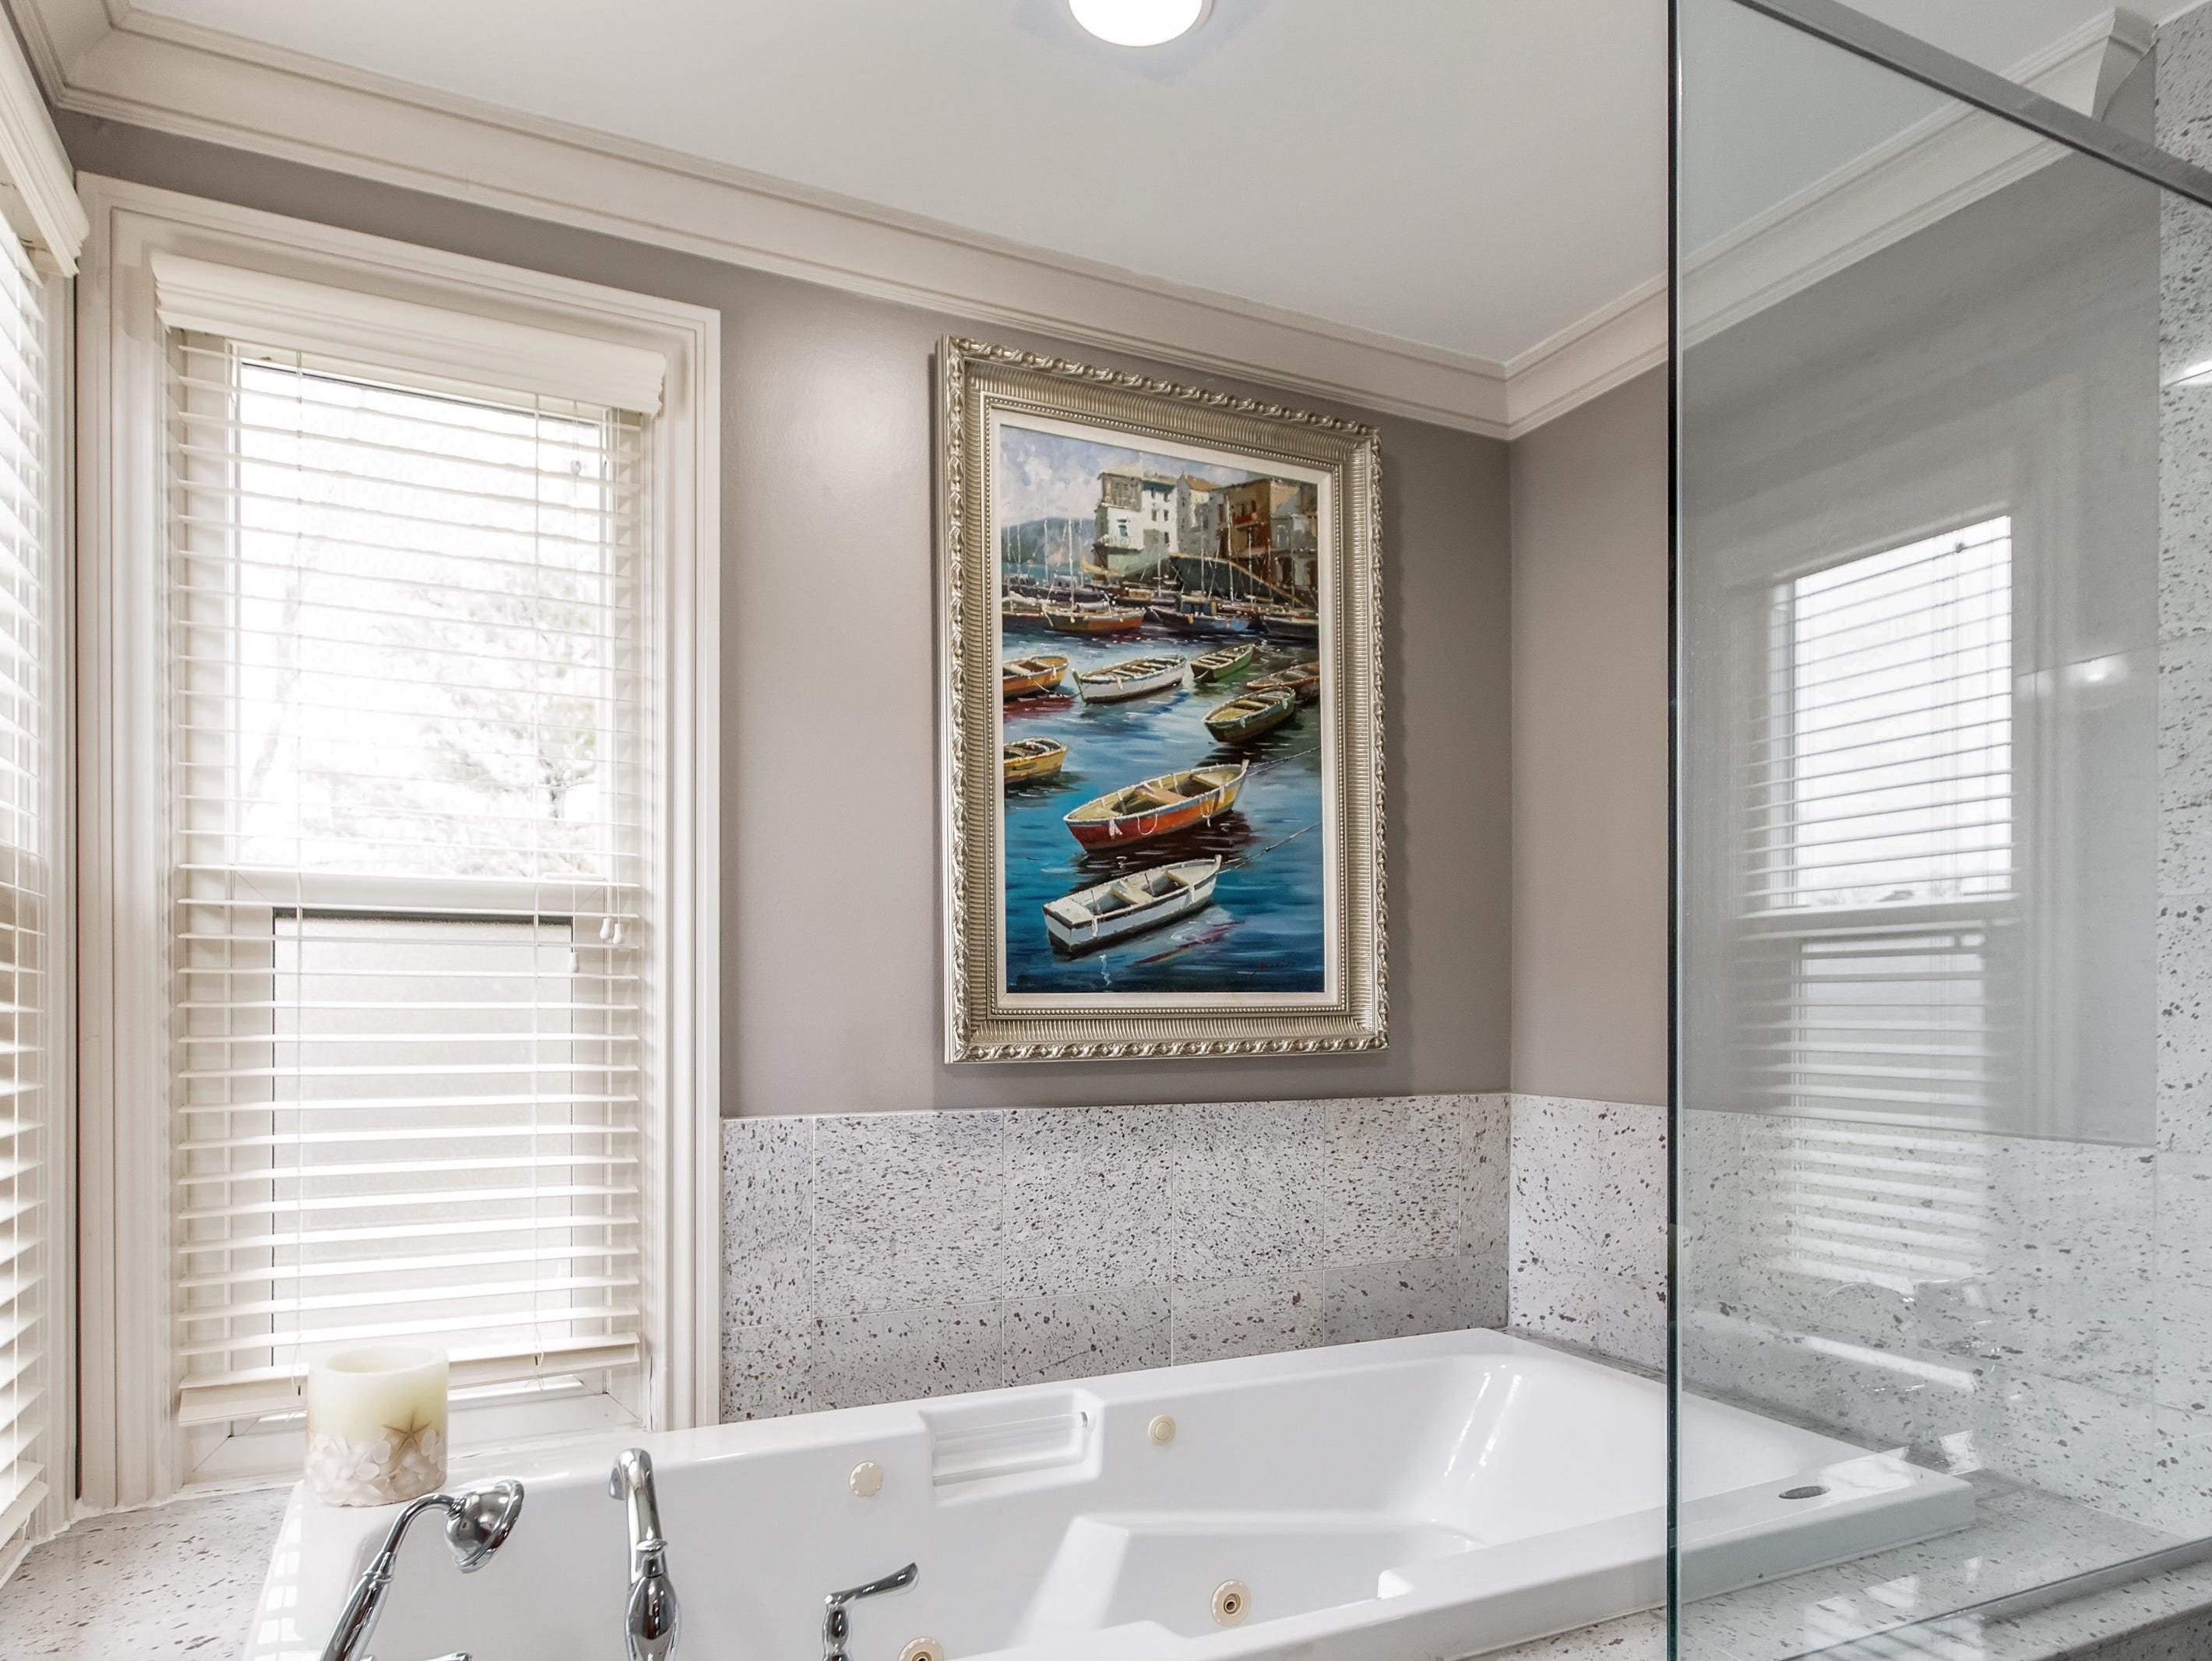 Built in 1985, the house comes with modernized accents, wainscoting, crown moldings, granite countertops, and a large master bedroom en-suite with a jetted tub and granite shower. There are also four additional bedrooms, and a total of 2 ½ baths.